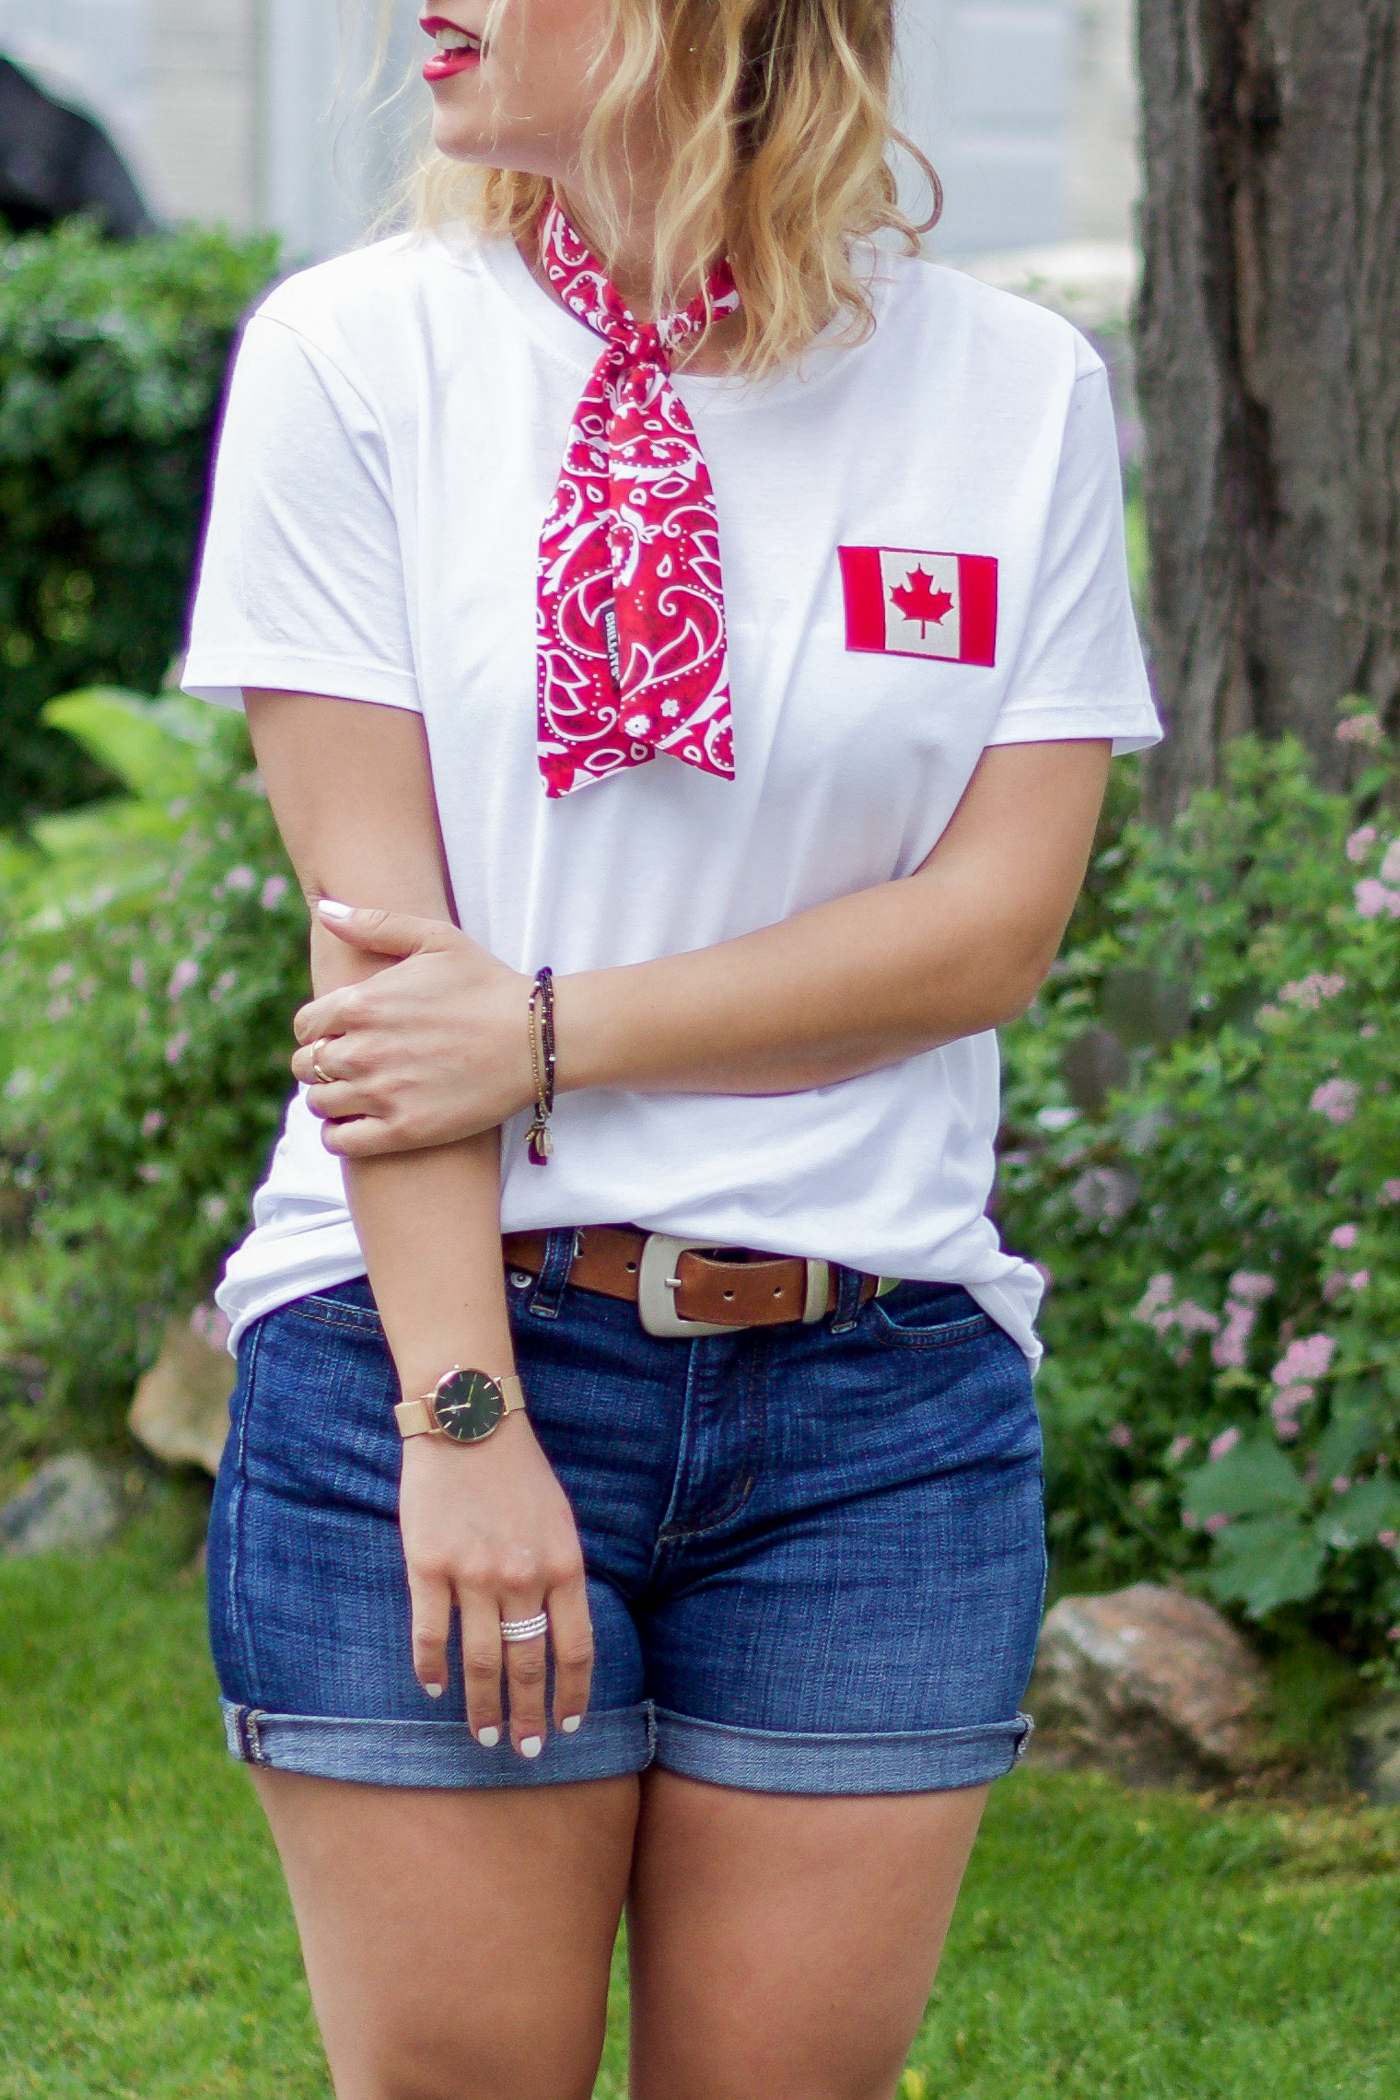 Canadian fashion and lifestyle blogger, Jackie of Something About That, is sharing some Canada Day 150 outfit inspiration, with items she bought on Amazon.ca